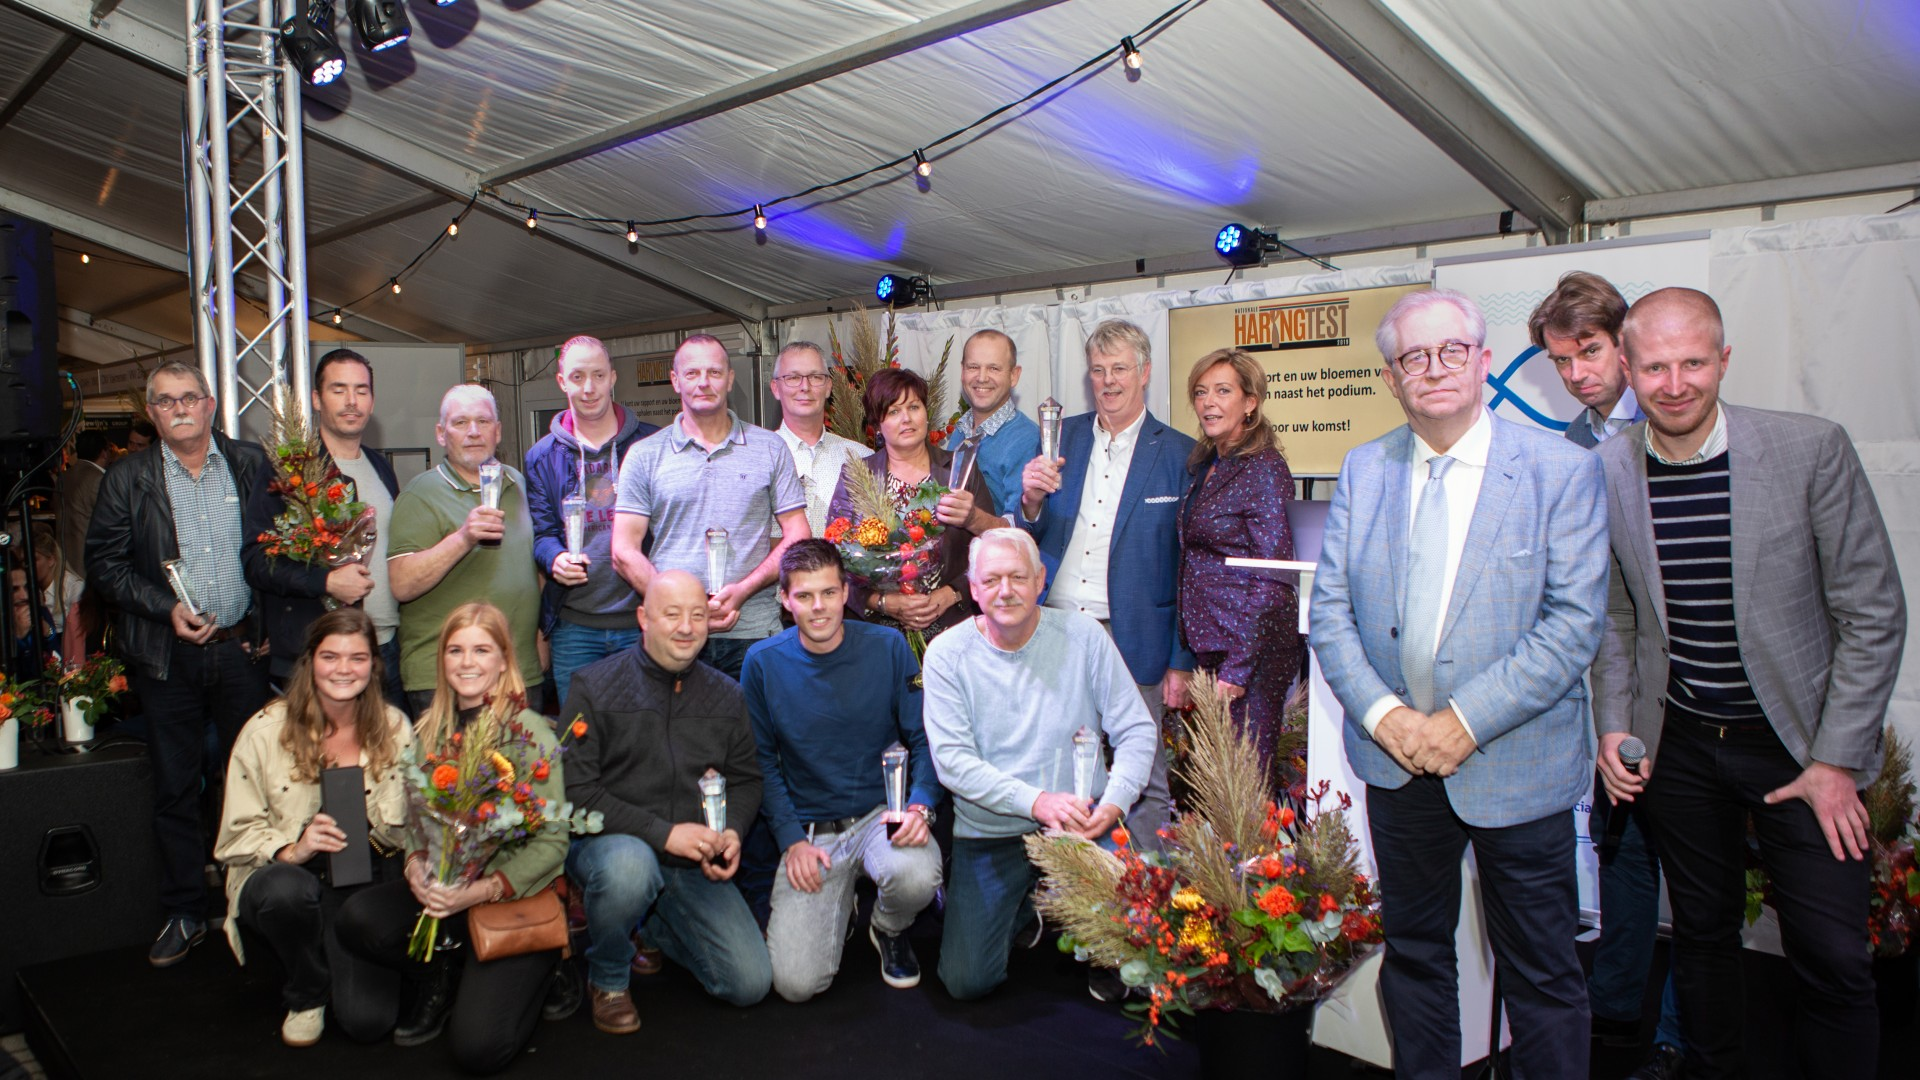 Winnaars-Nationale-Haringtest-2019